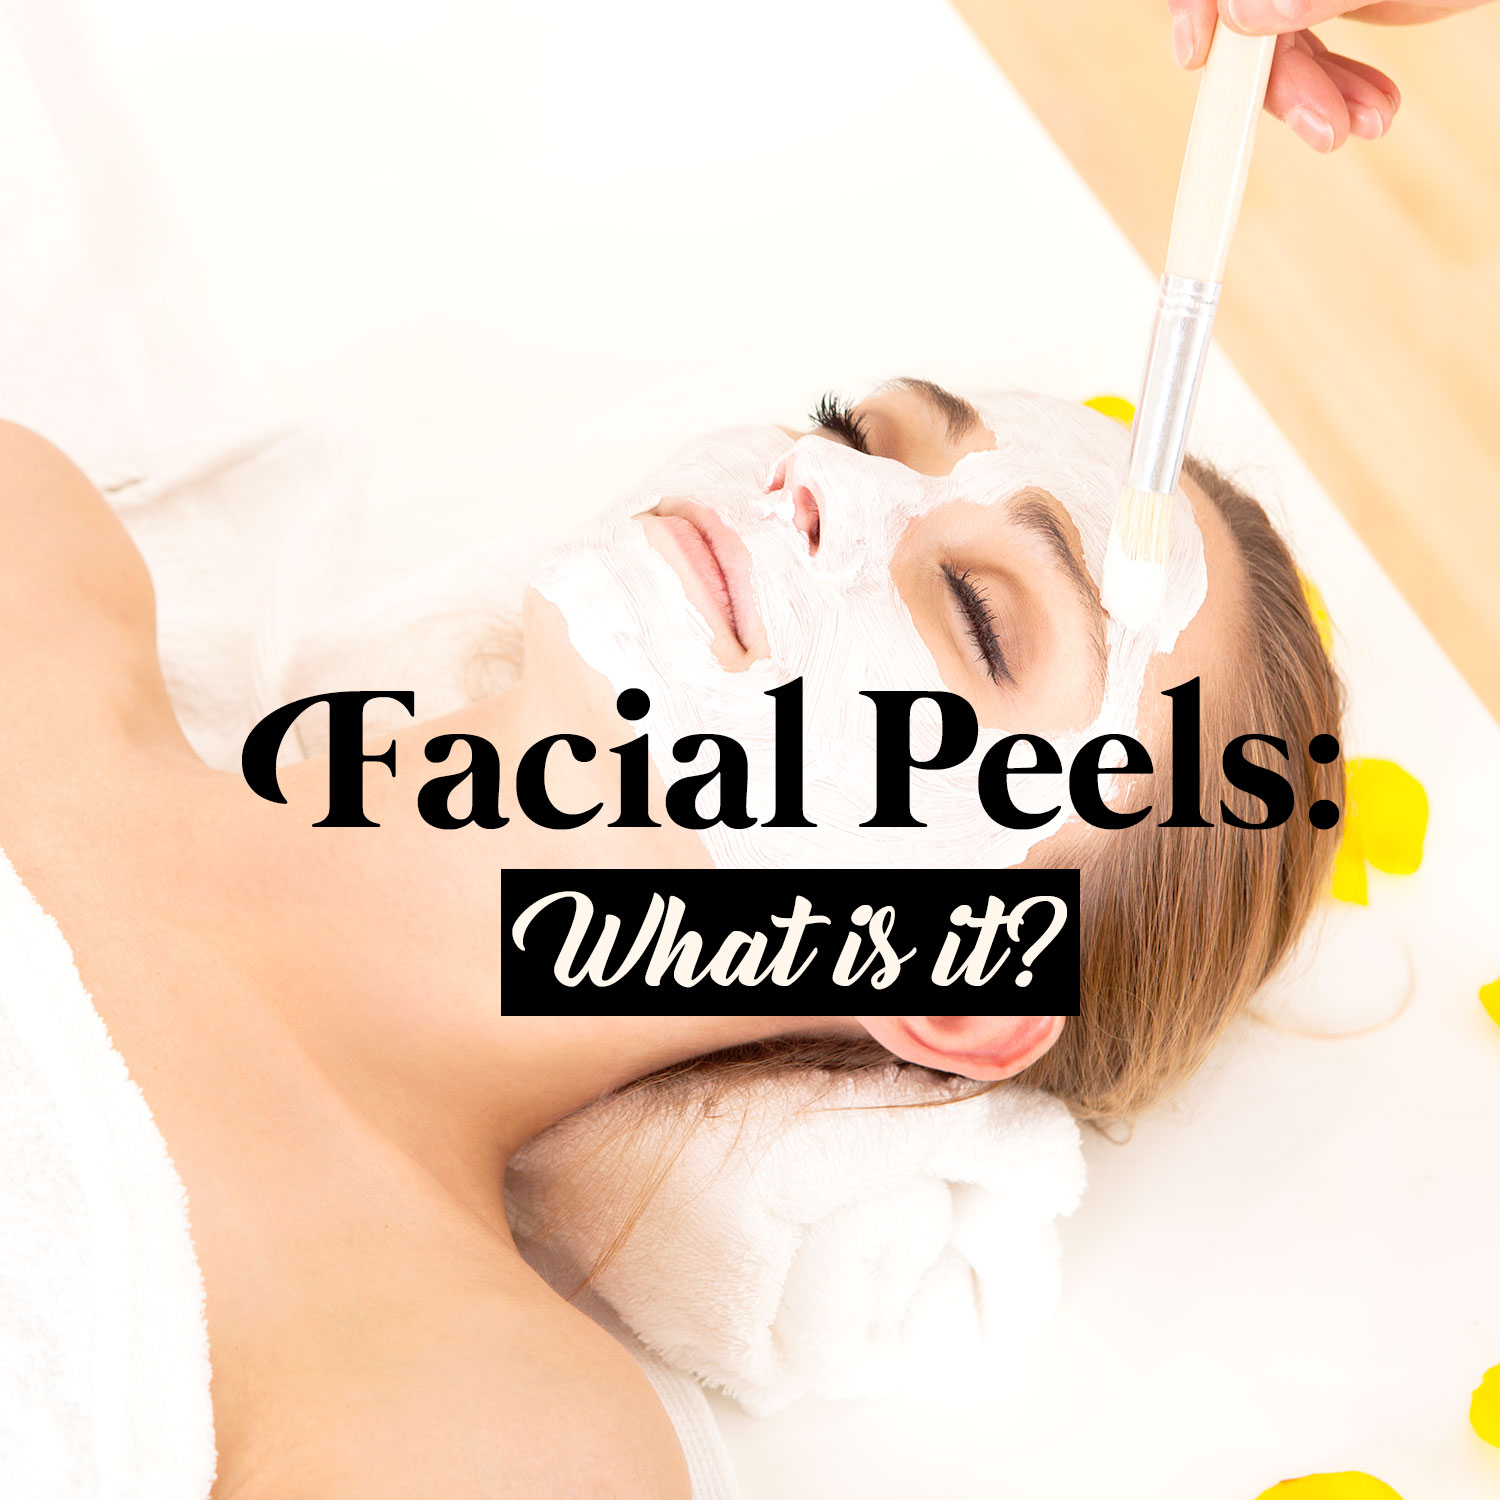 What are Facial Peels